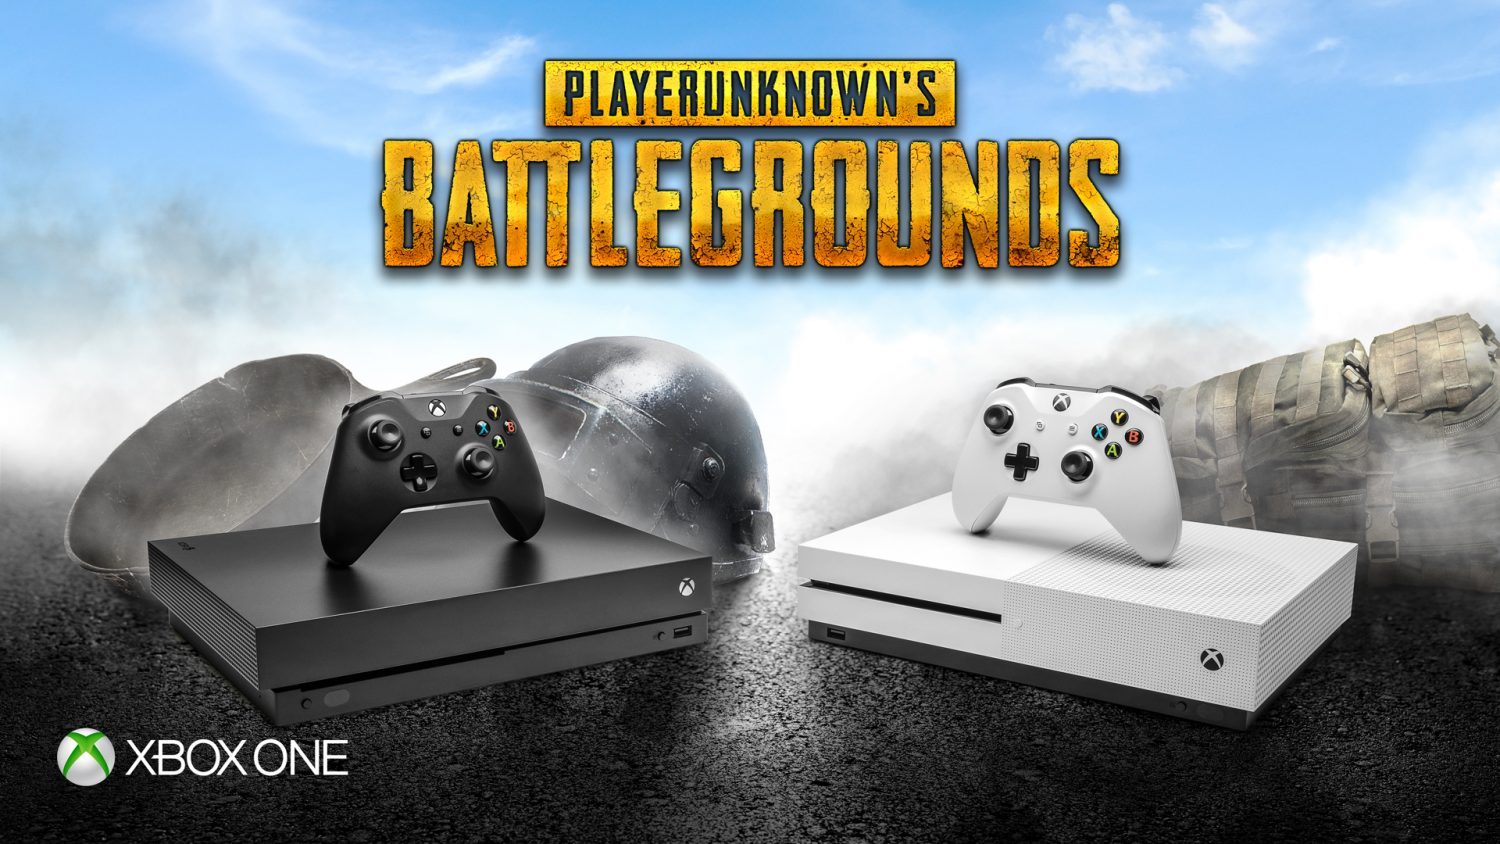 PlayerUnknown's Battlegrounds is coming to Xbox One on December 12th